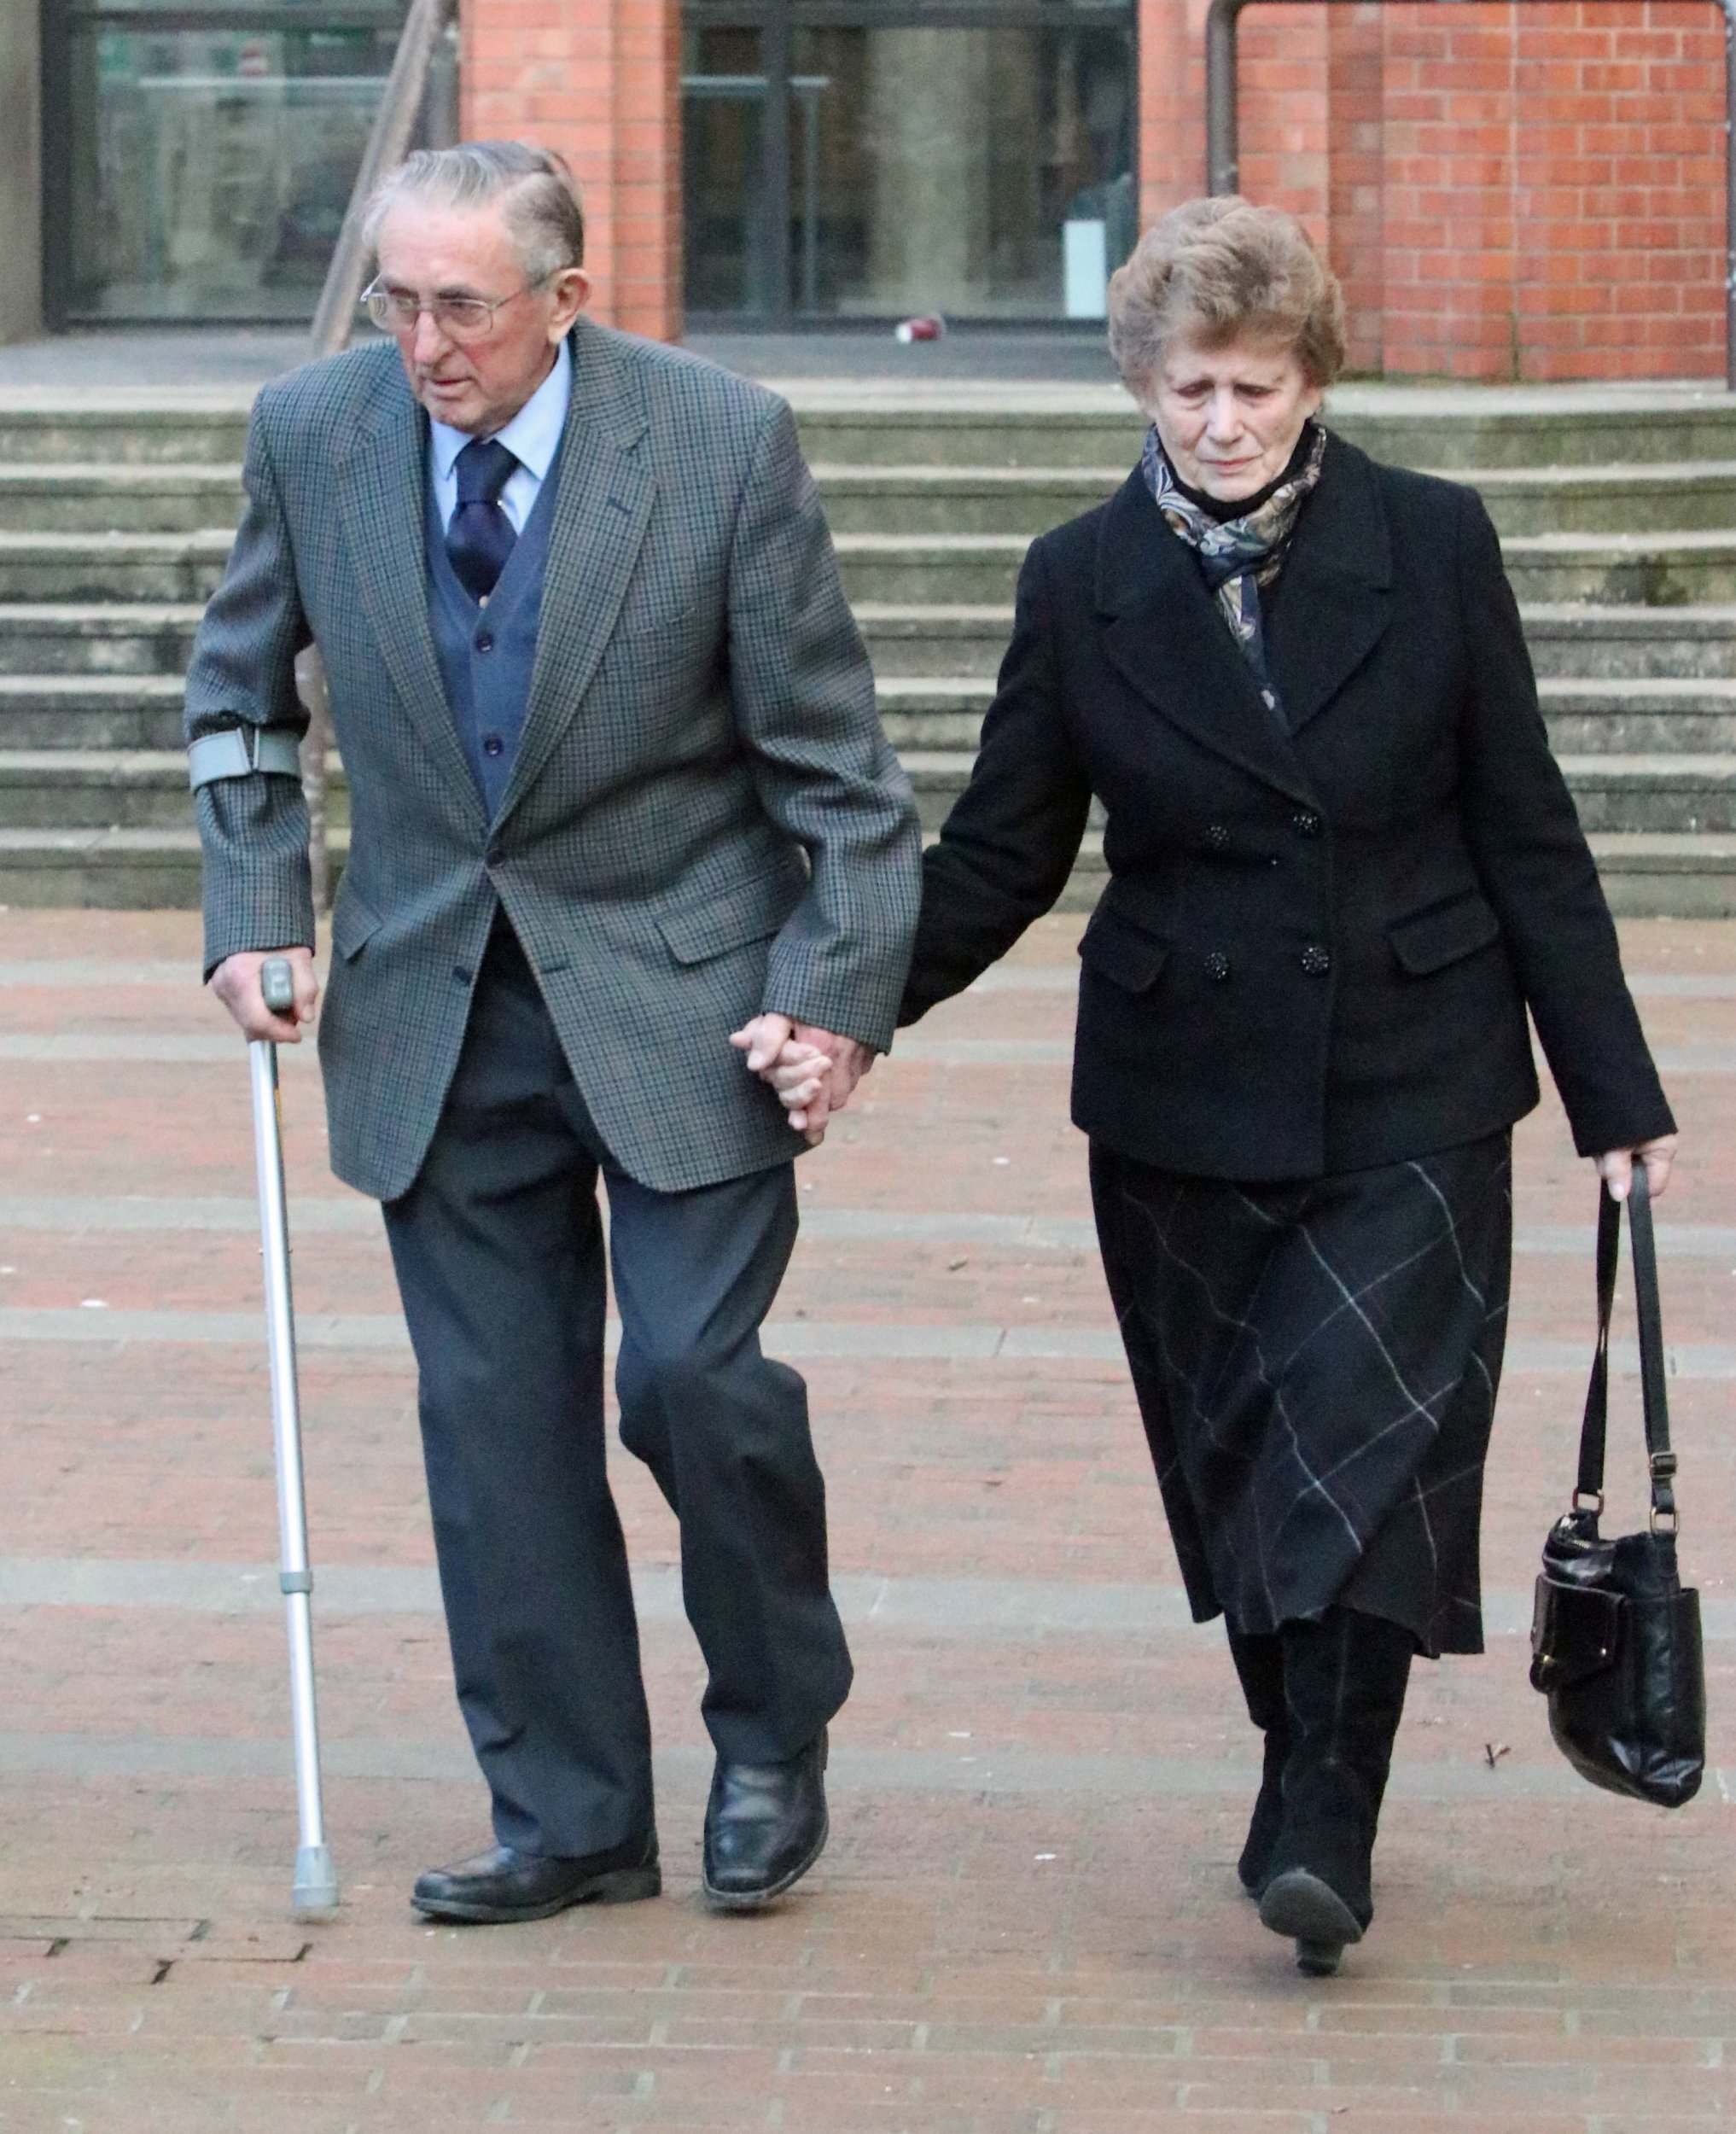 Farmer Kenneth Hugill with his wife Sheila Hugill leave Hull Crown Court where Mr Hugill is on trial for shooting a convicted burglar.